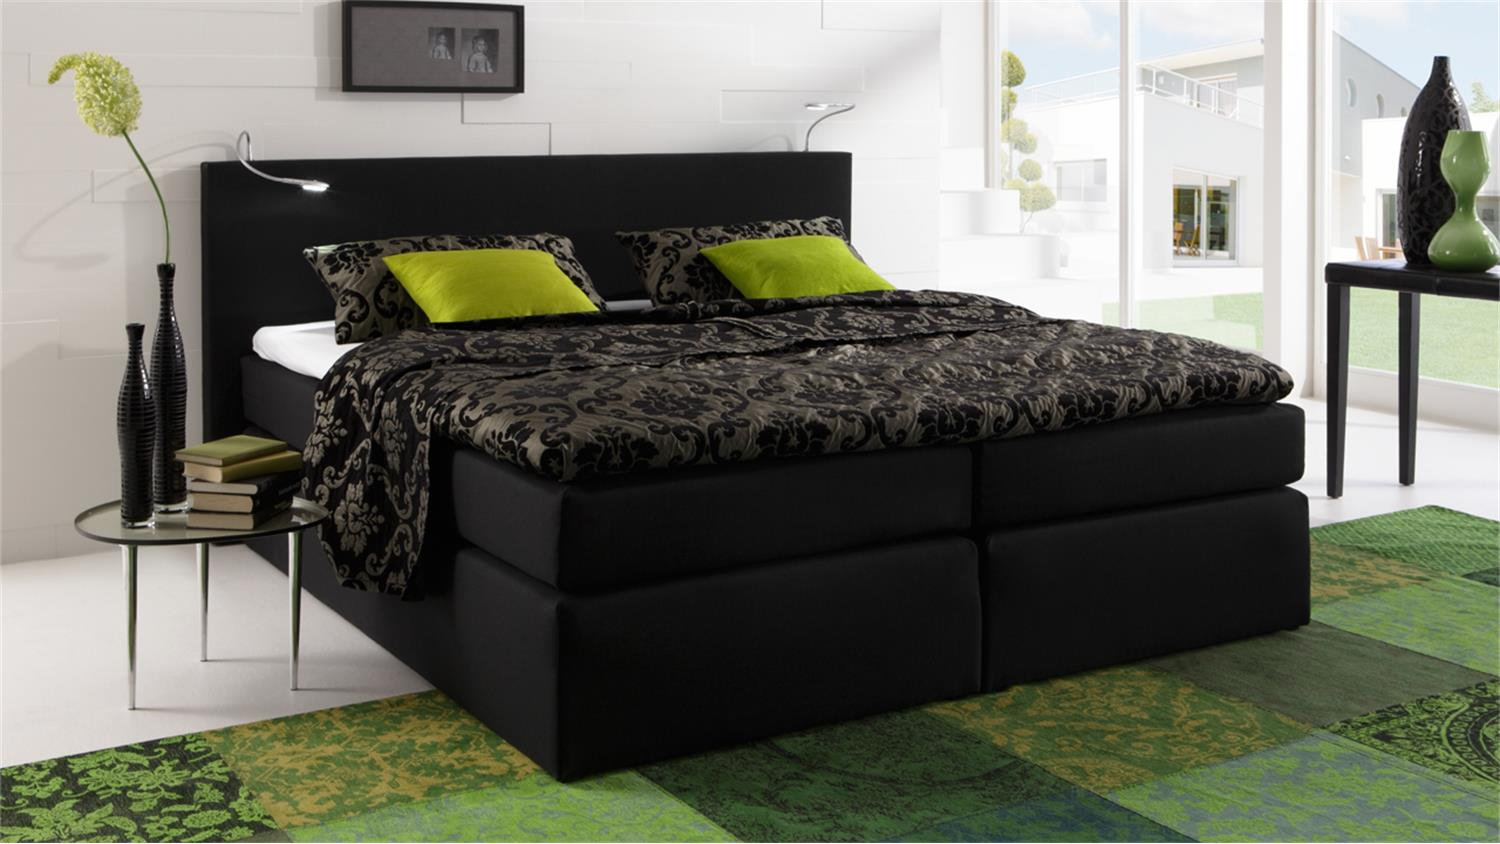 boxspringbett atlanta stoff schwarz 160x200 cm mit topper. Black Bedroom Furniture Sets. Home Design Ideas